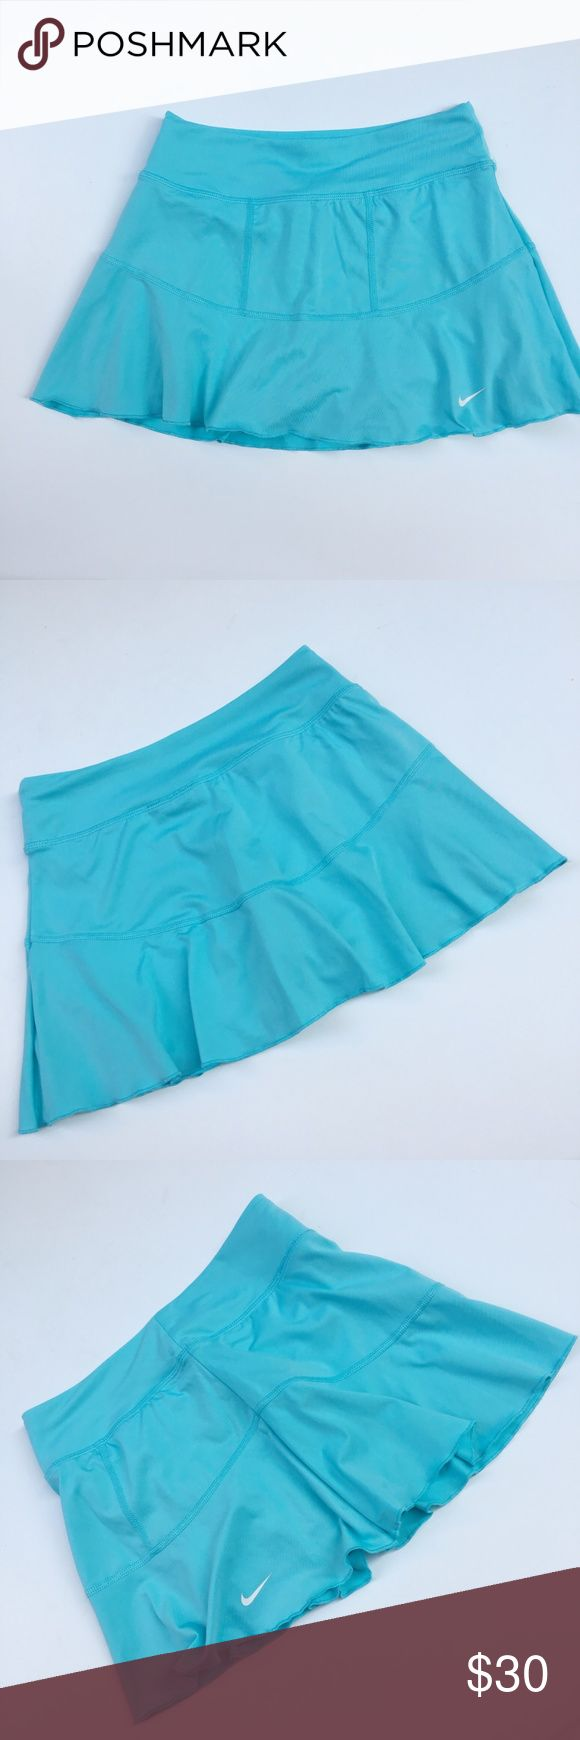 "Nike Tennis Skort Fit & Flare Mini Dri Fit XS WA9 Nike Women's Skorts Blue Dri-Fit Flare Flirty Skirt over Shorts, White Swoosh.  Elastic Waist Size: XS X Small  Waist: 11.25""  Inseam: 4"" Length: 11.5""  Condition: Very Good. Comes from a pet and smoke free environment!  Please review pictures and contact me if you have any questions. Color: Blue Country: Cambodia Care: Machine WT: 0.07 CSKU: WA009;  Measurements are approximate & taken flat Nike Shorts Skorts"